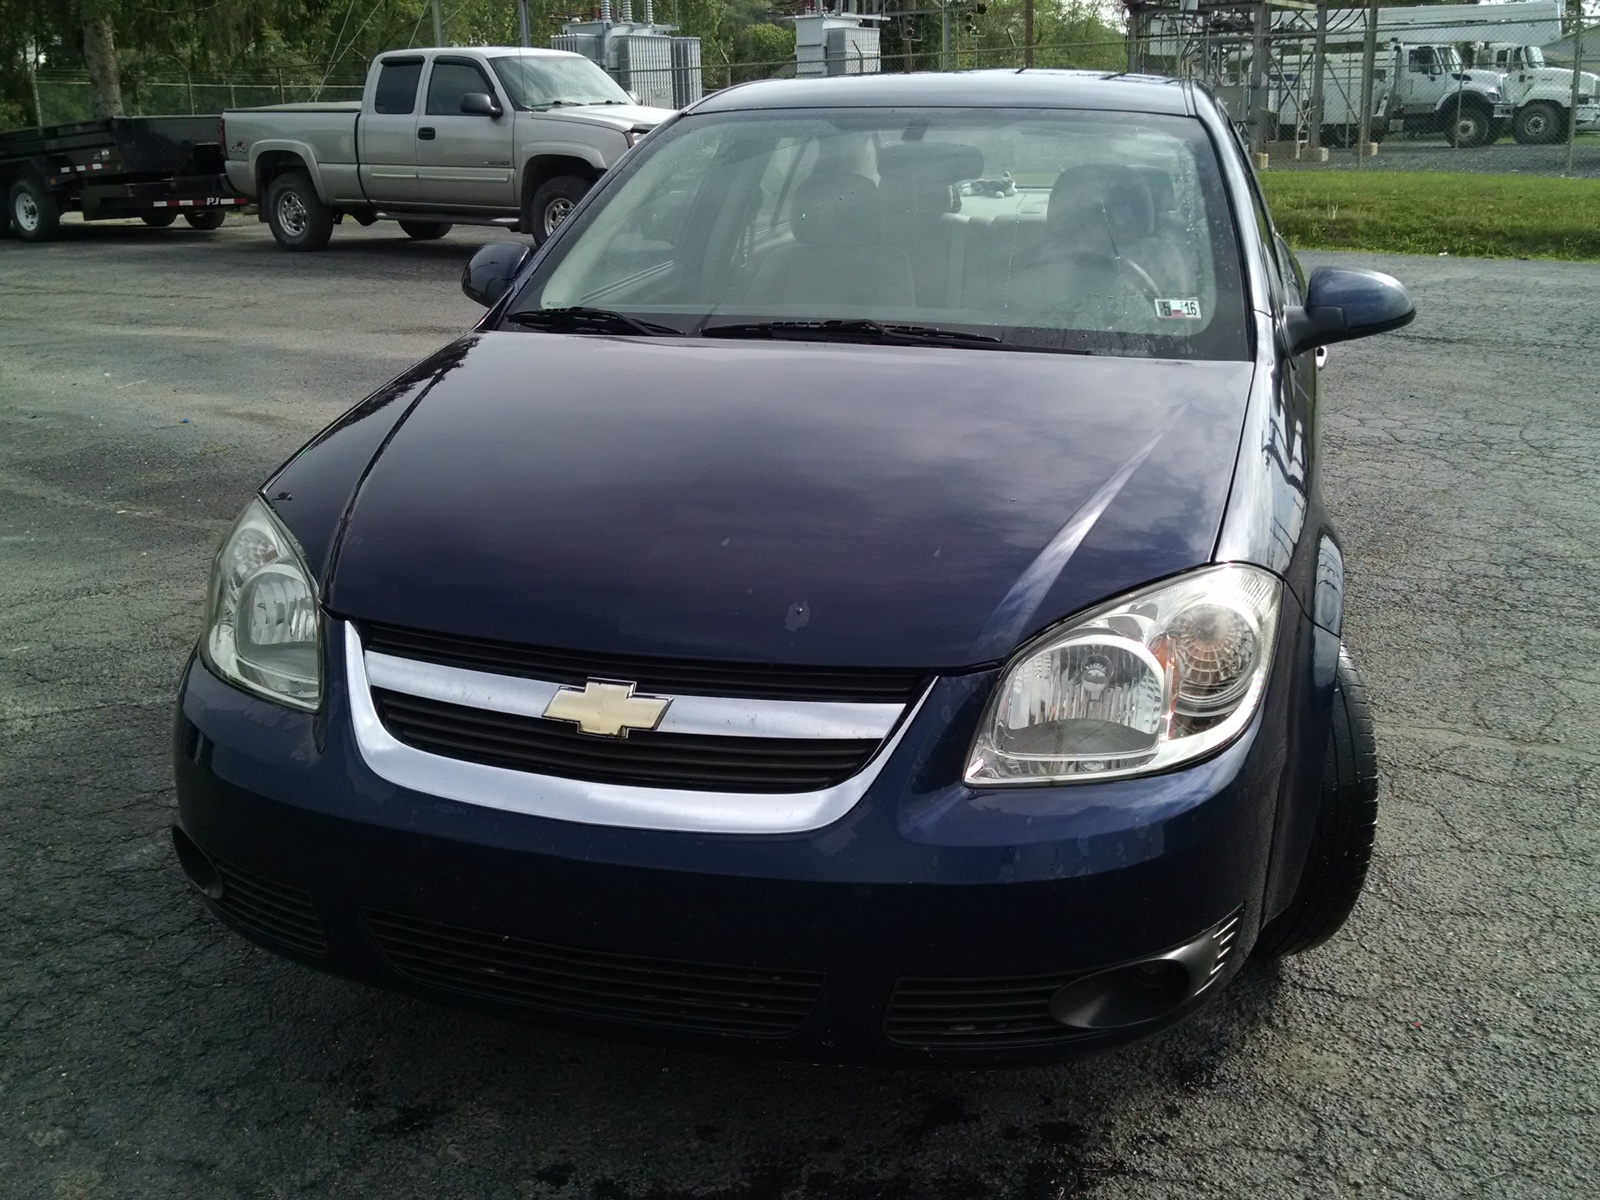 chevrolet cobalt questions a miss after going about 40 miles in a rh cargurus com Chevy Cobalt 5 Speed Interior Chevy Cobalt 5 Speed Interior